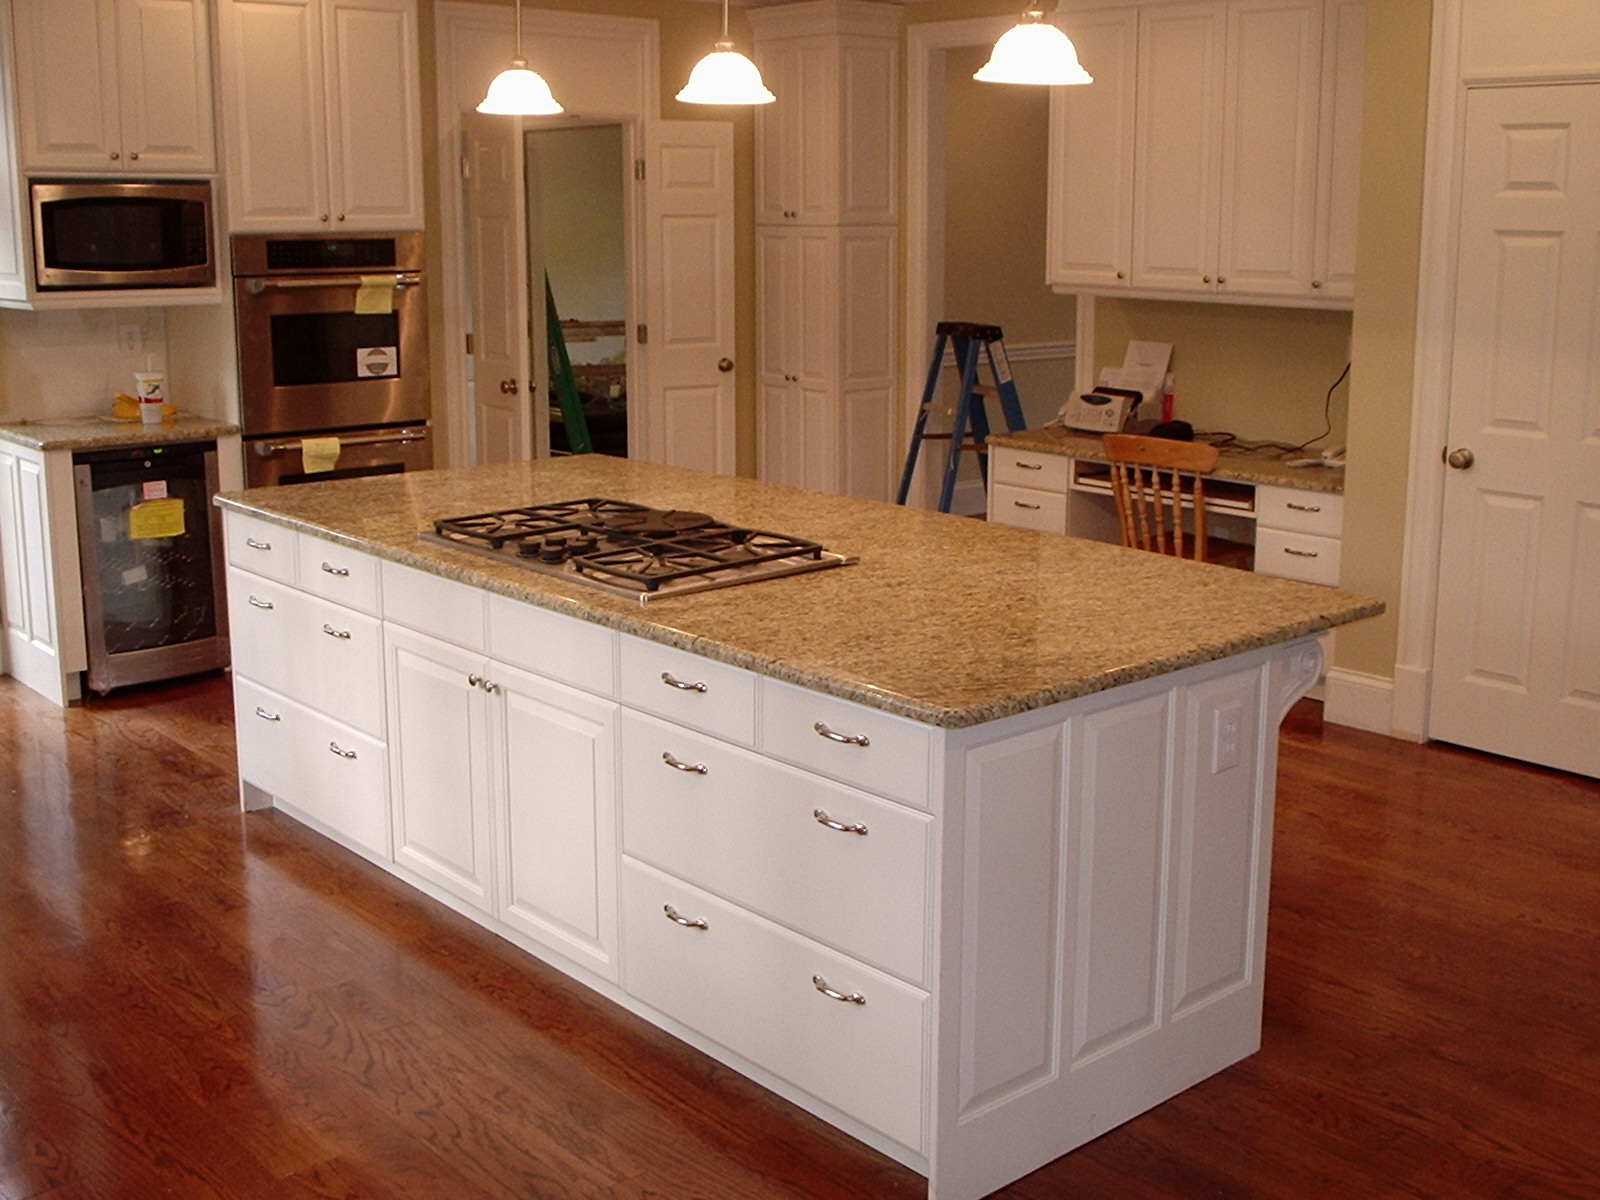 Kitchen cabinet plans dream house experience for Kitchen cabinets and design